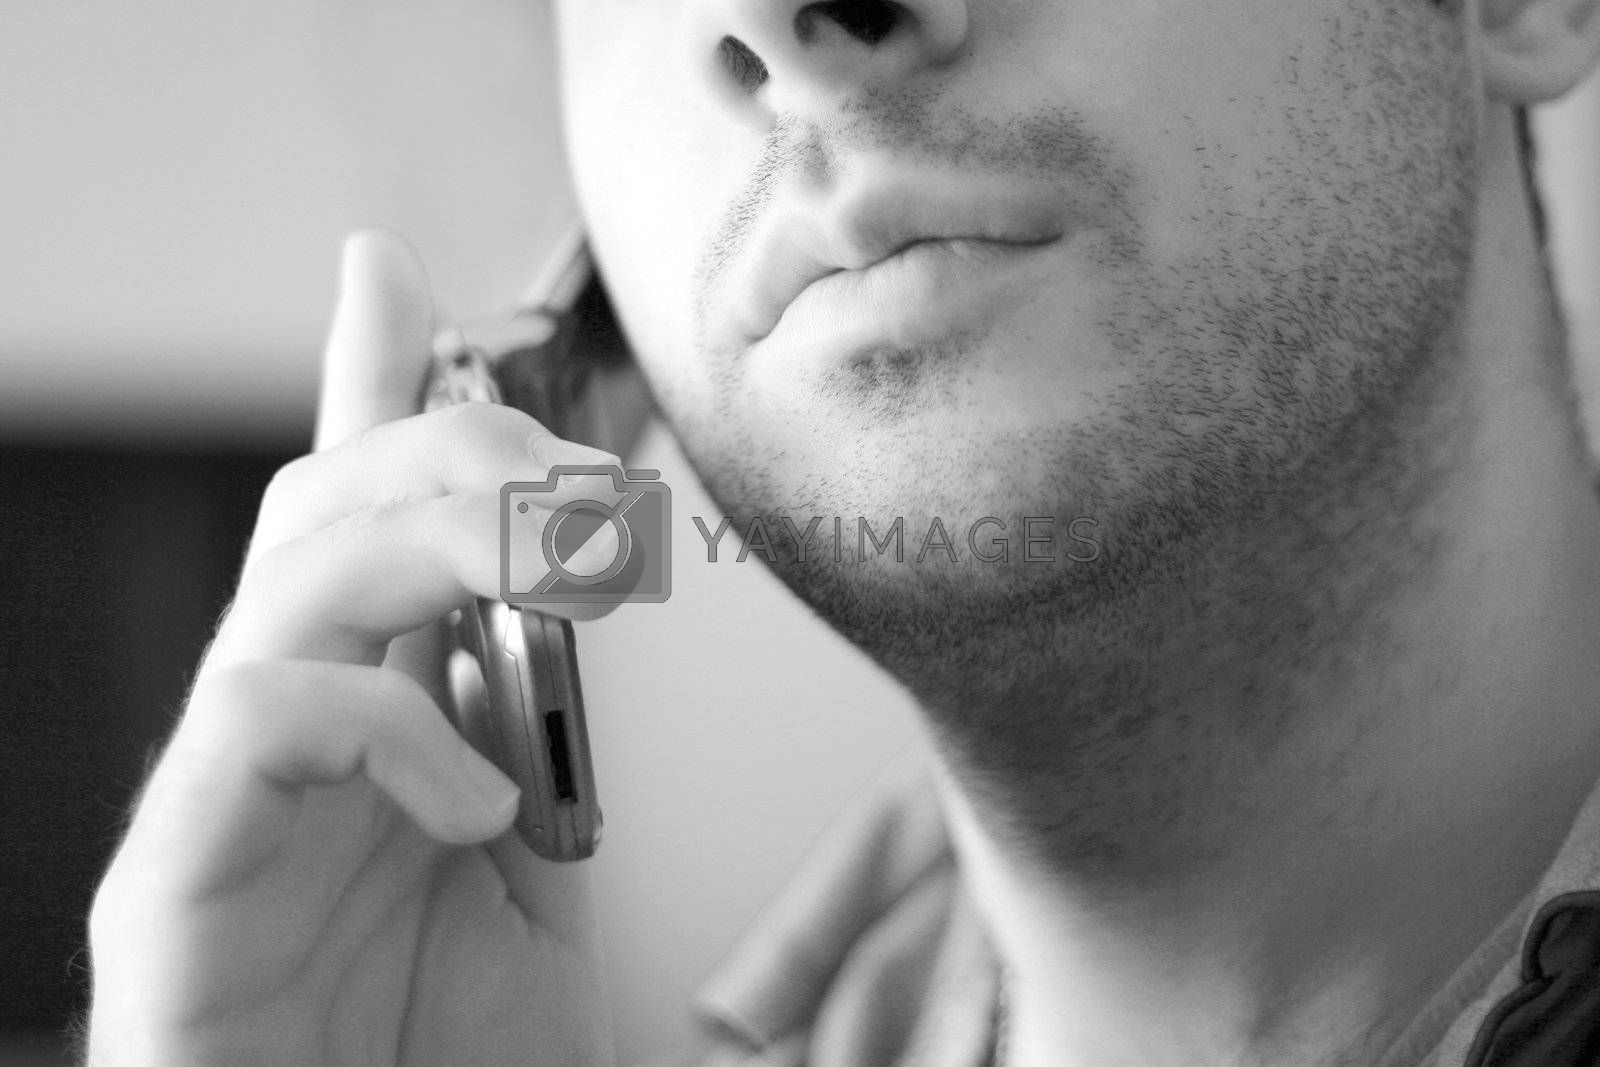 Black and white portrait of an unshaven young man talking on his celly phone.